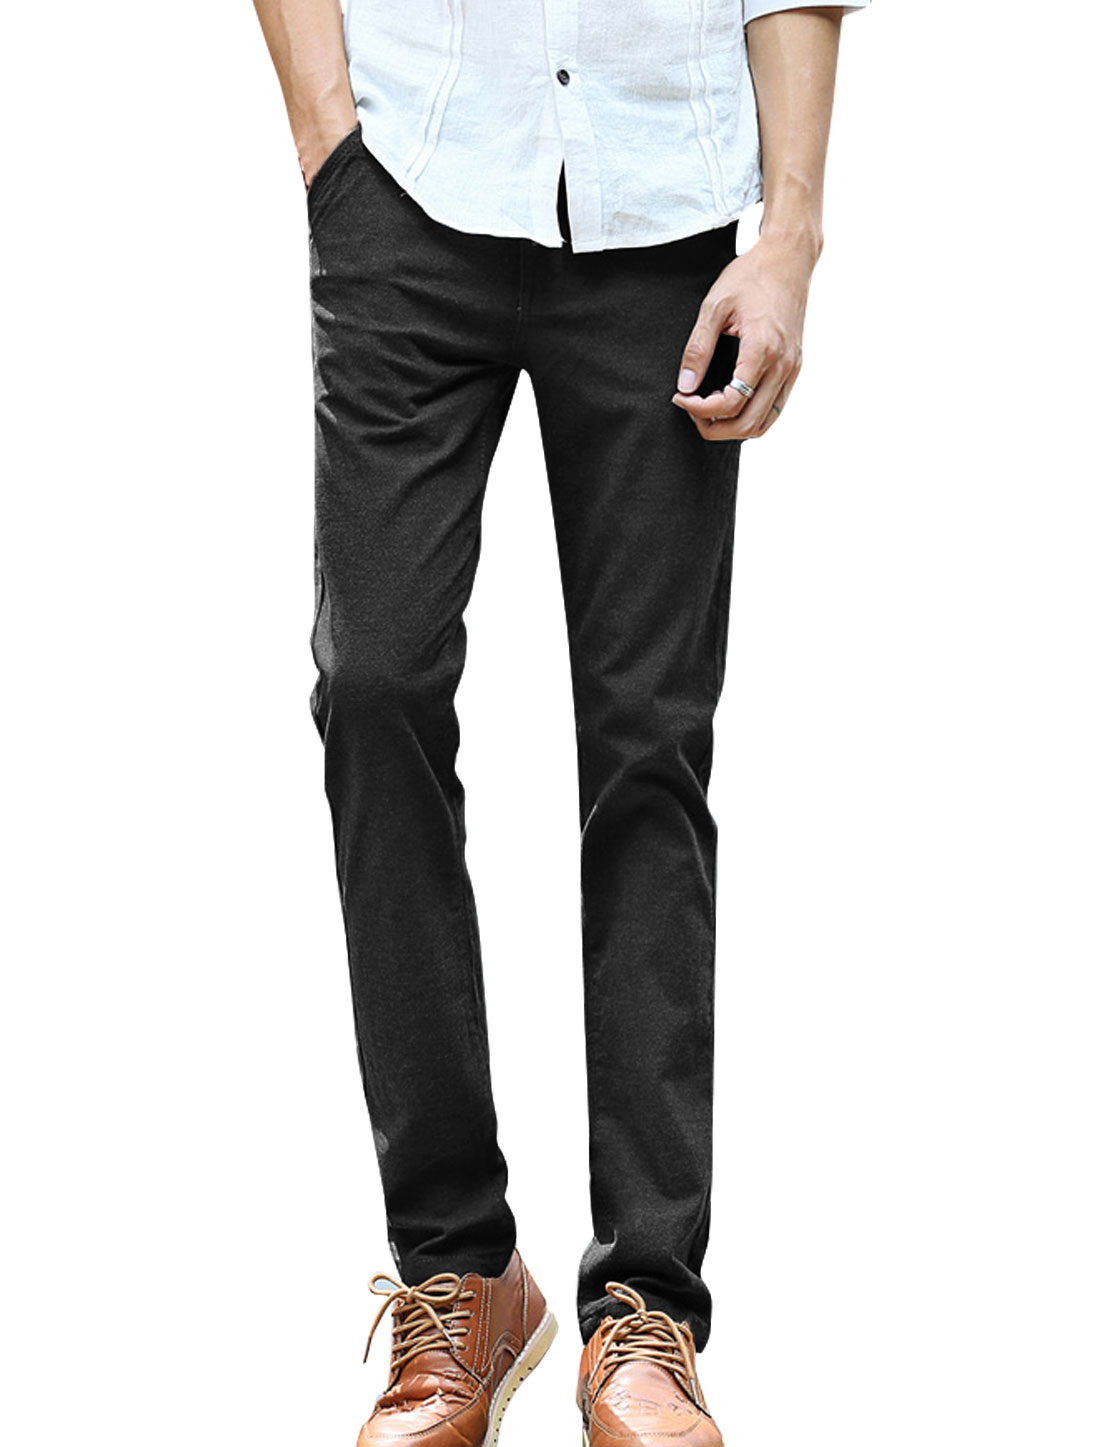 Men Mid Waist Zip Fly Slant Pockets Slim Fit Long Pants Black W32